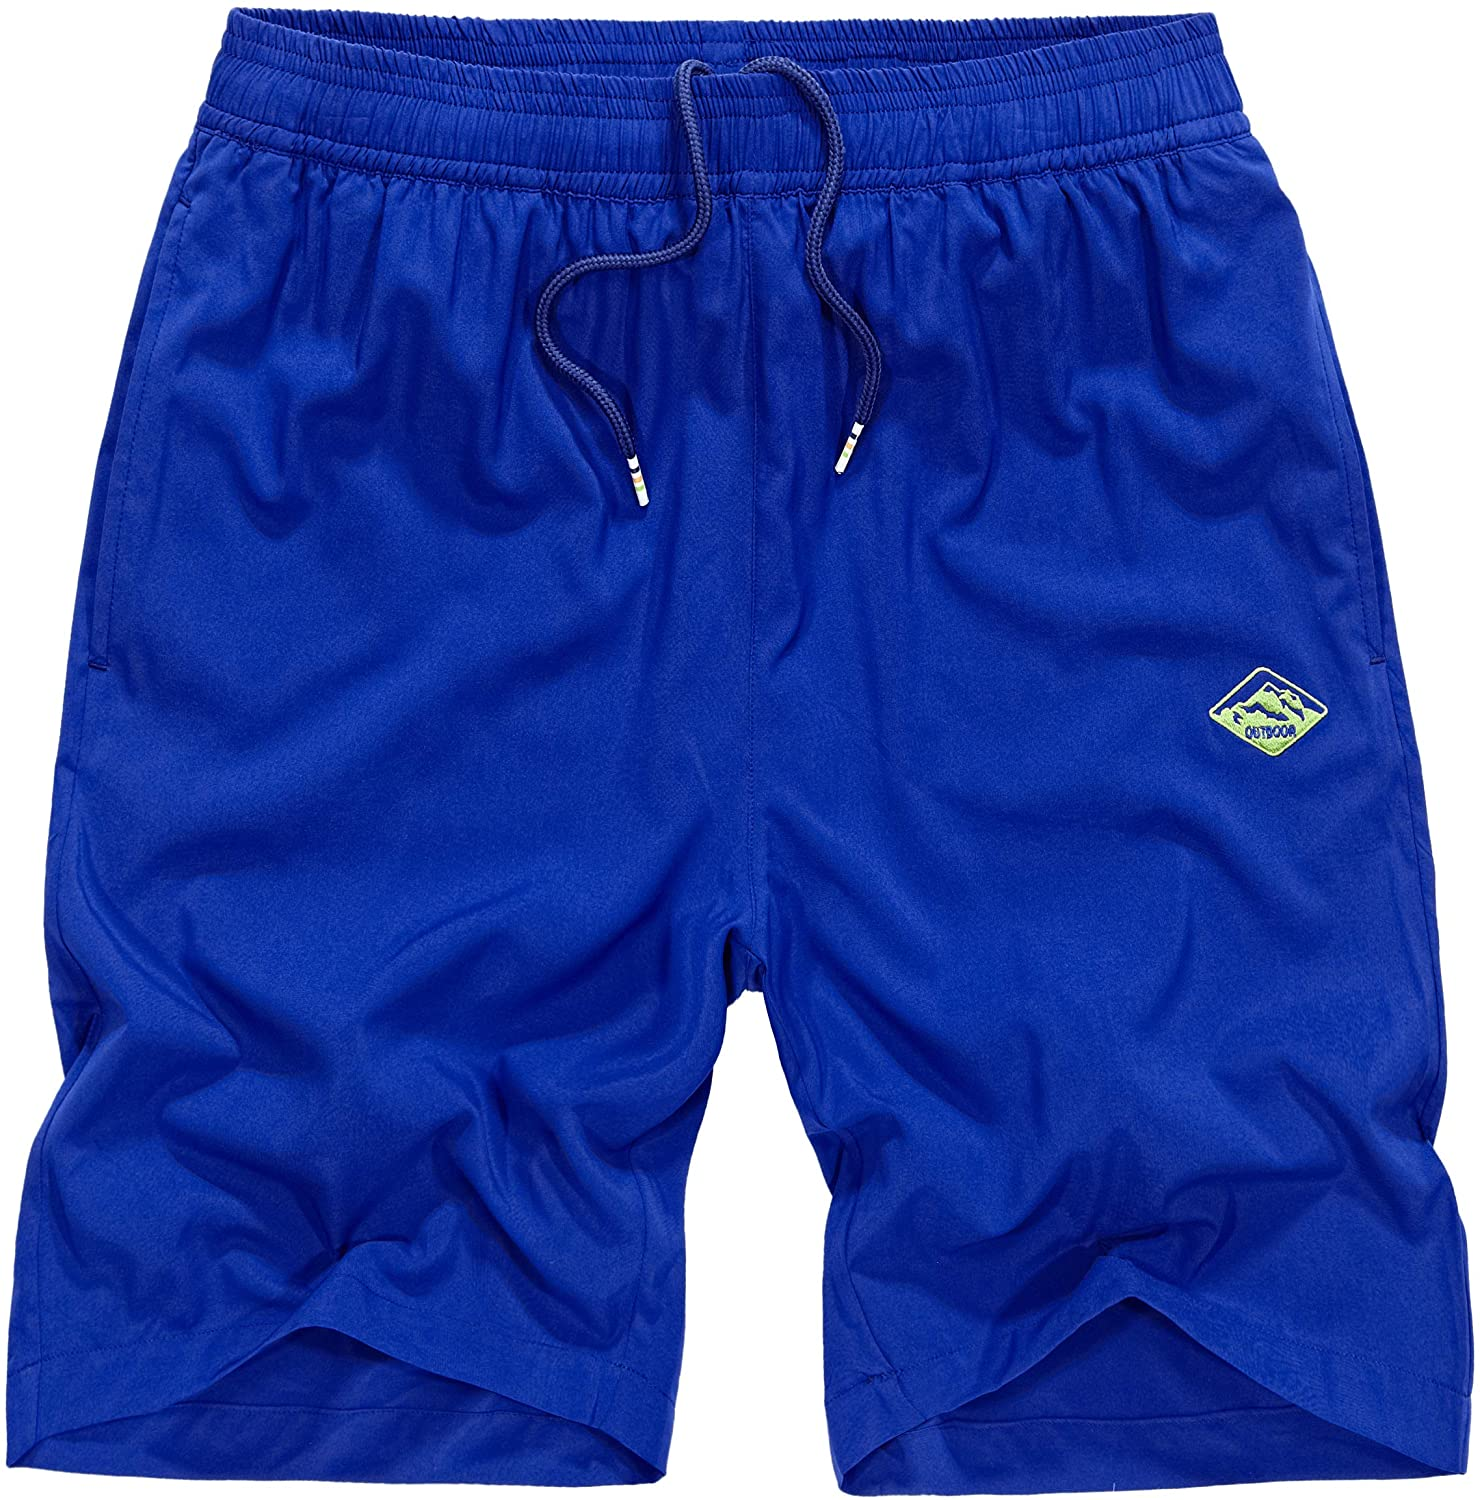 Vcansion Men's Outdoor Lightweight Hiking Shorts Quick Dry Sports Casual Shorts Skateboard Shorts Swimming Shorts